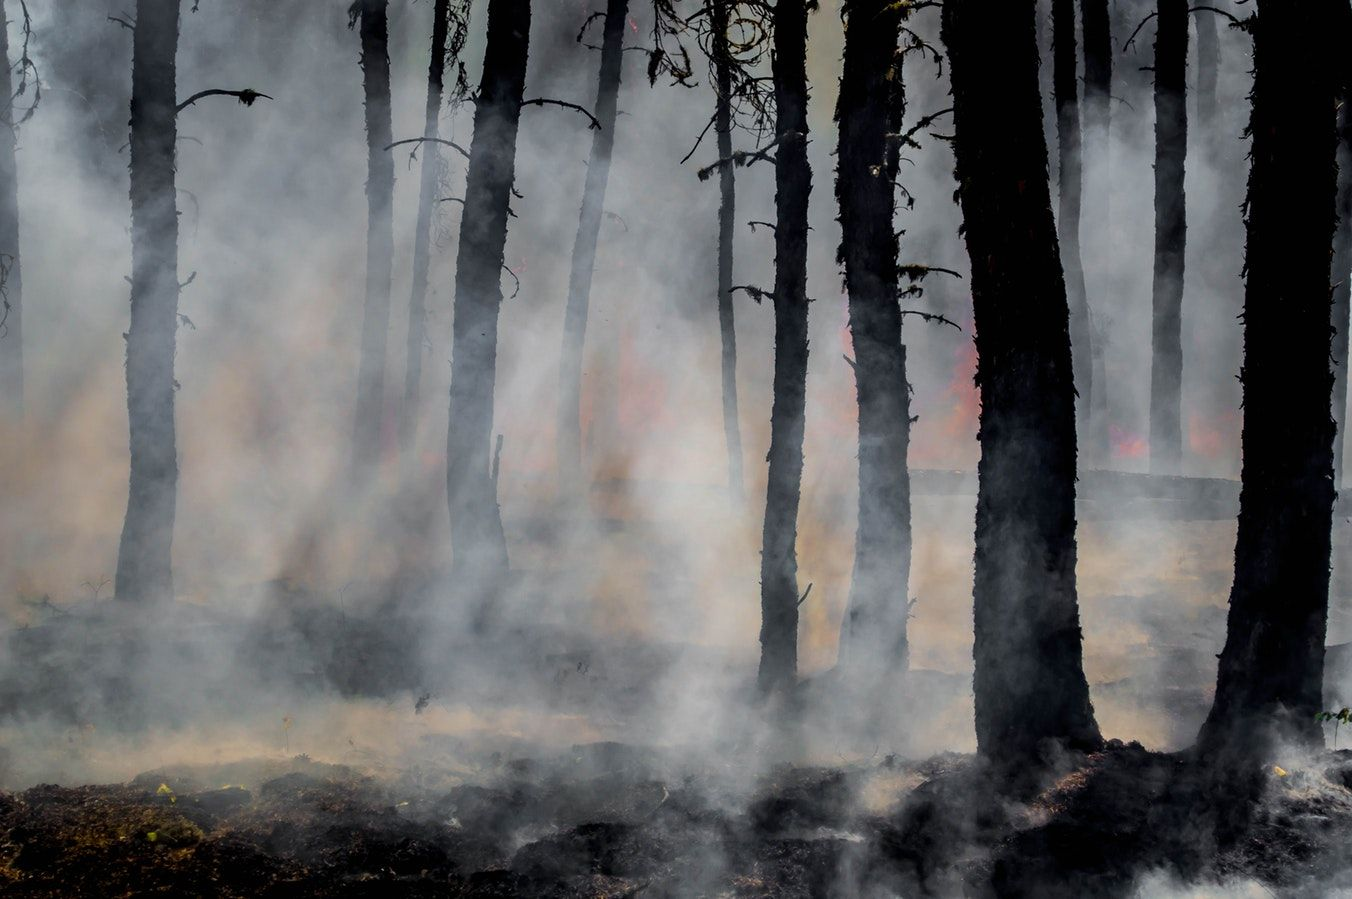 Wildfire Season Tips & Products Forest wallpaper, Nature